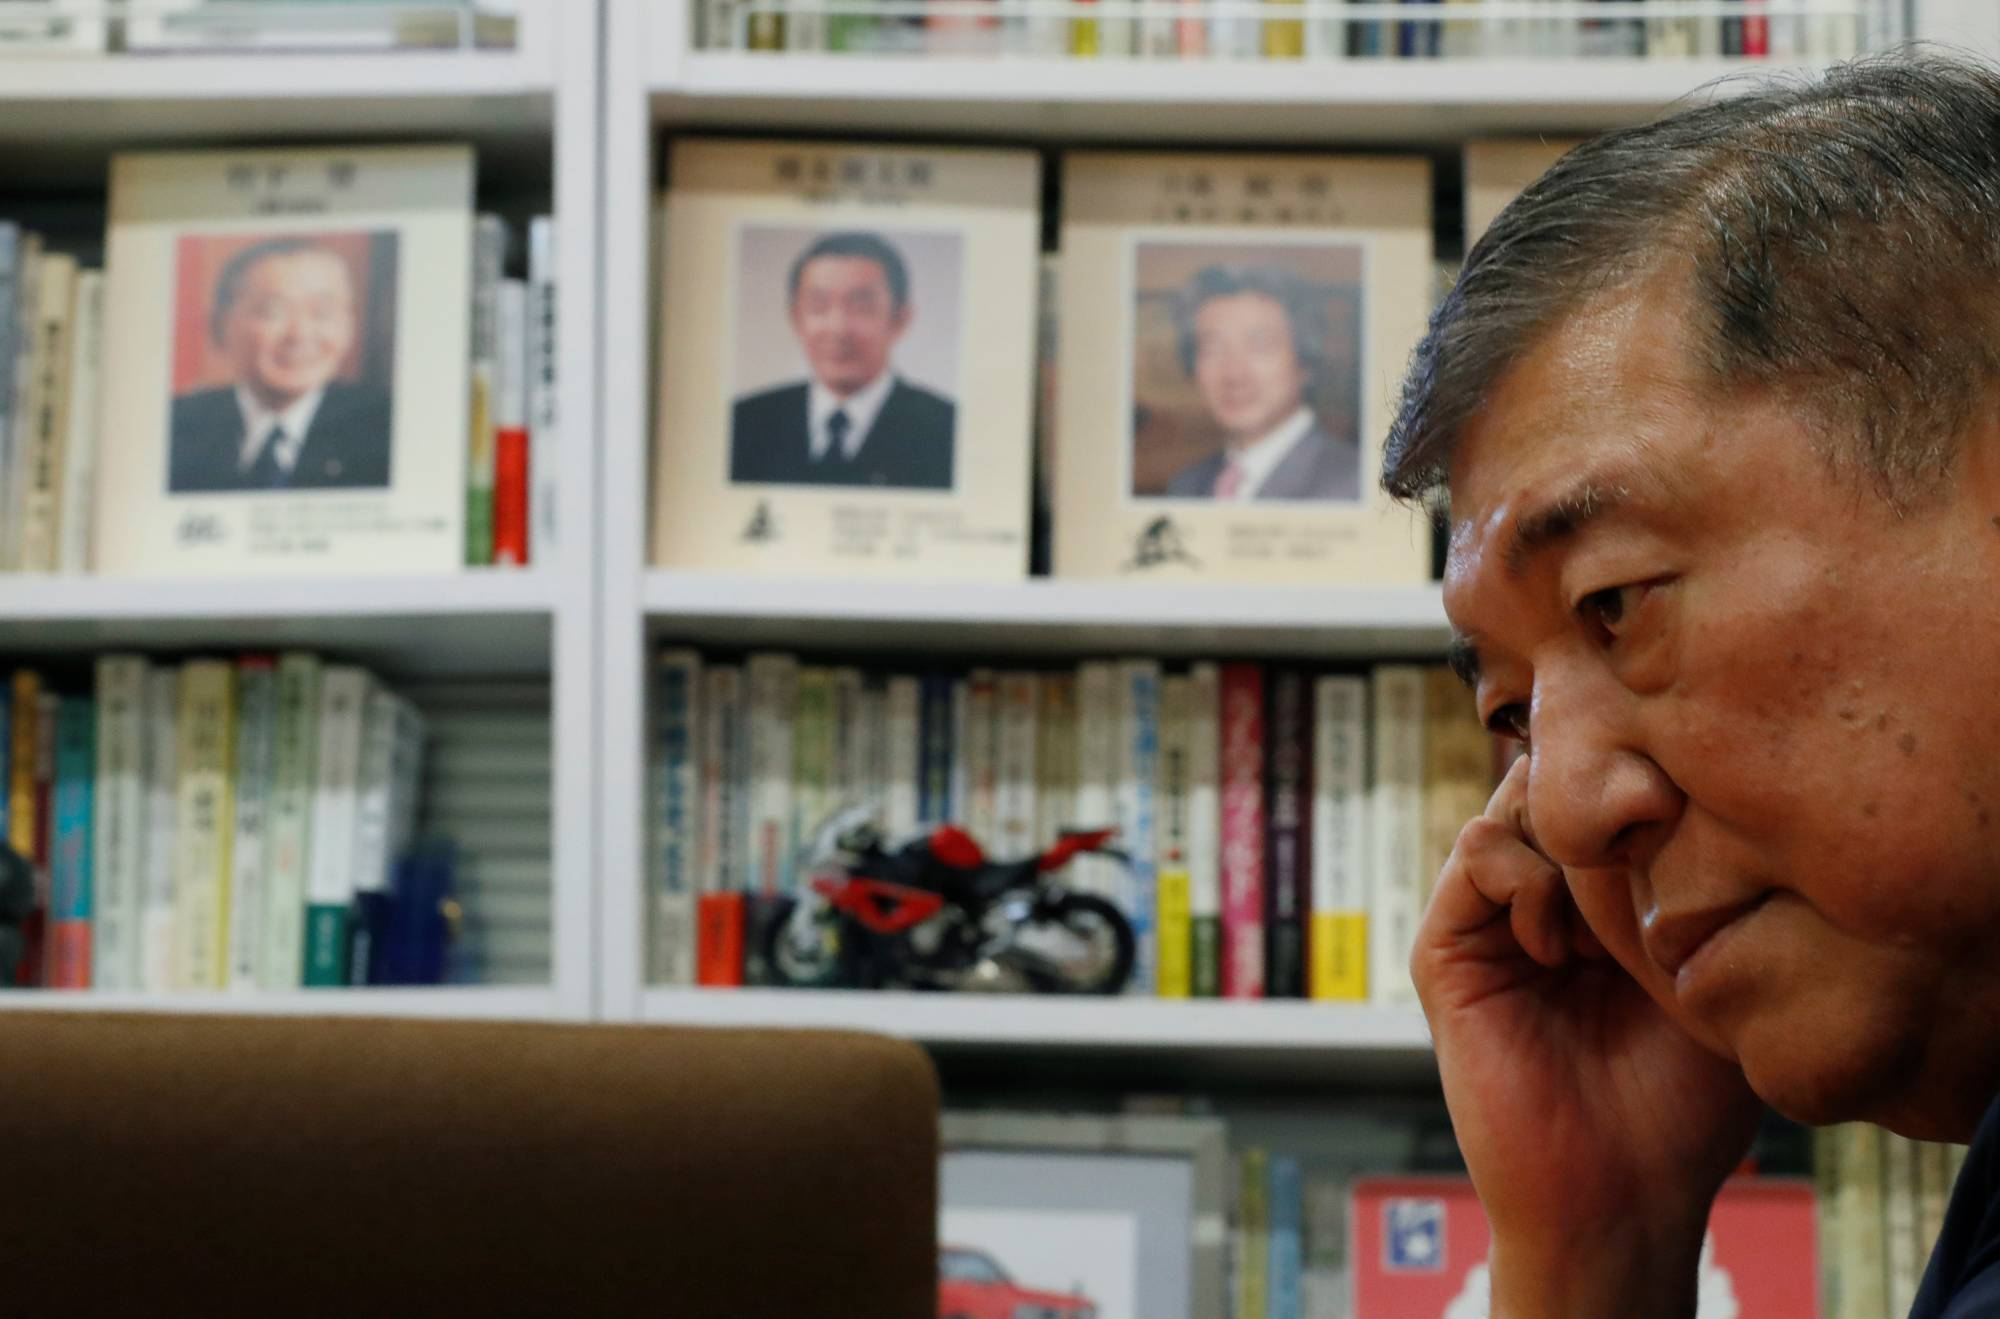 After leaving the Abe Cabinet, Shigeru Ishiba pivoted toward becoming the intraparty critic of Prime Minister Shinzo Abe. | REUTERS